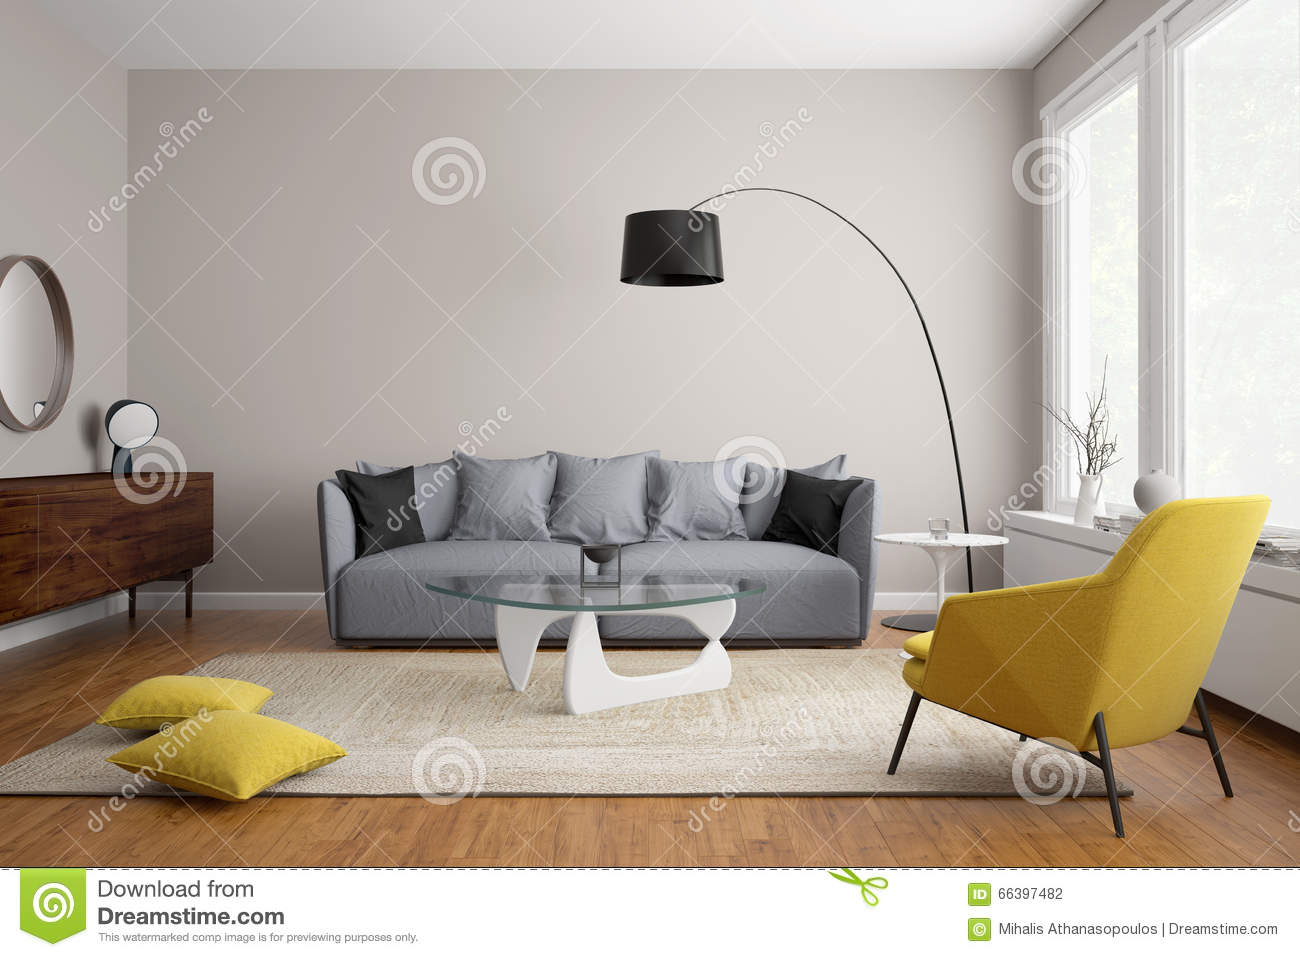 Royalty Free Illustration. Download Modern Scandinavian Living Room With Grey  Sofa ... Part 53